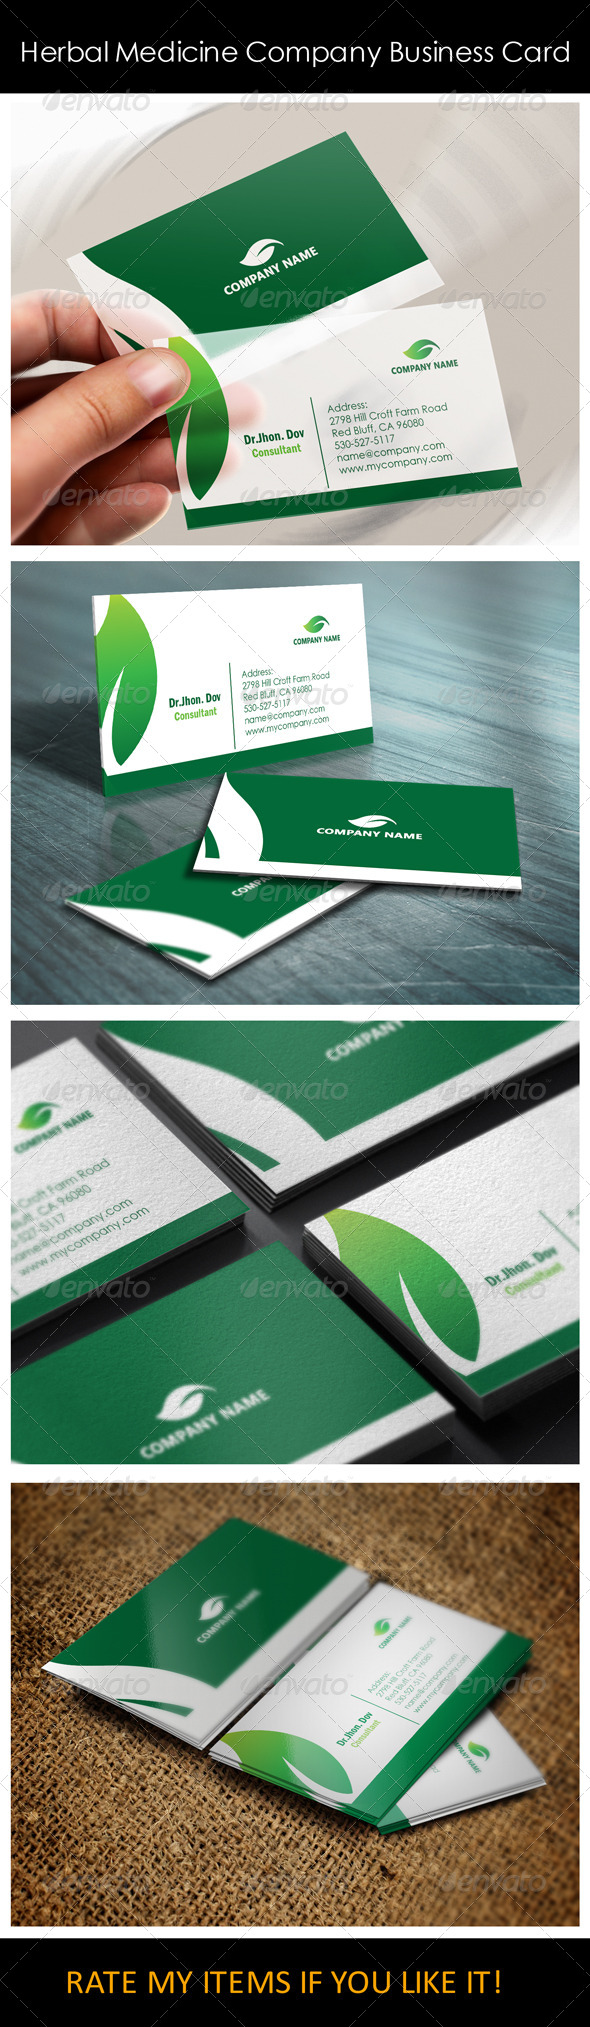 Herbal medicine company business card templates by shujaktk herbal medicine company business card templates corporate business cards cheaphphosting Images